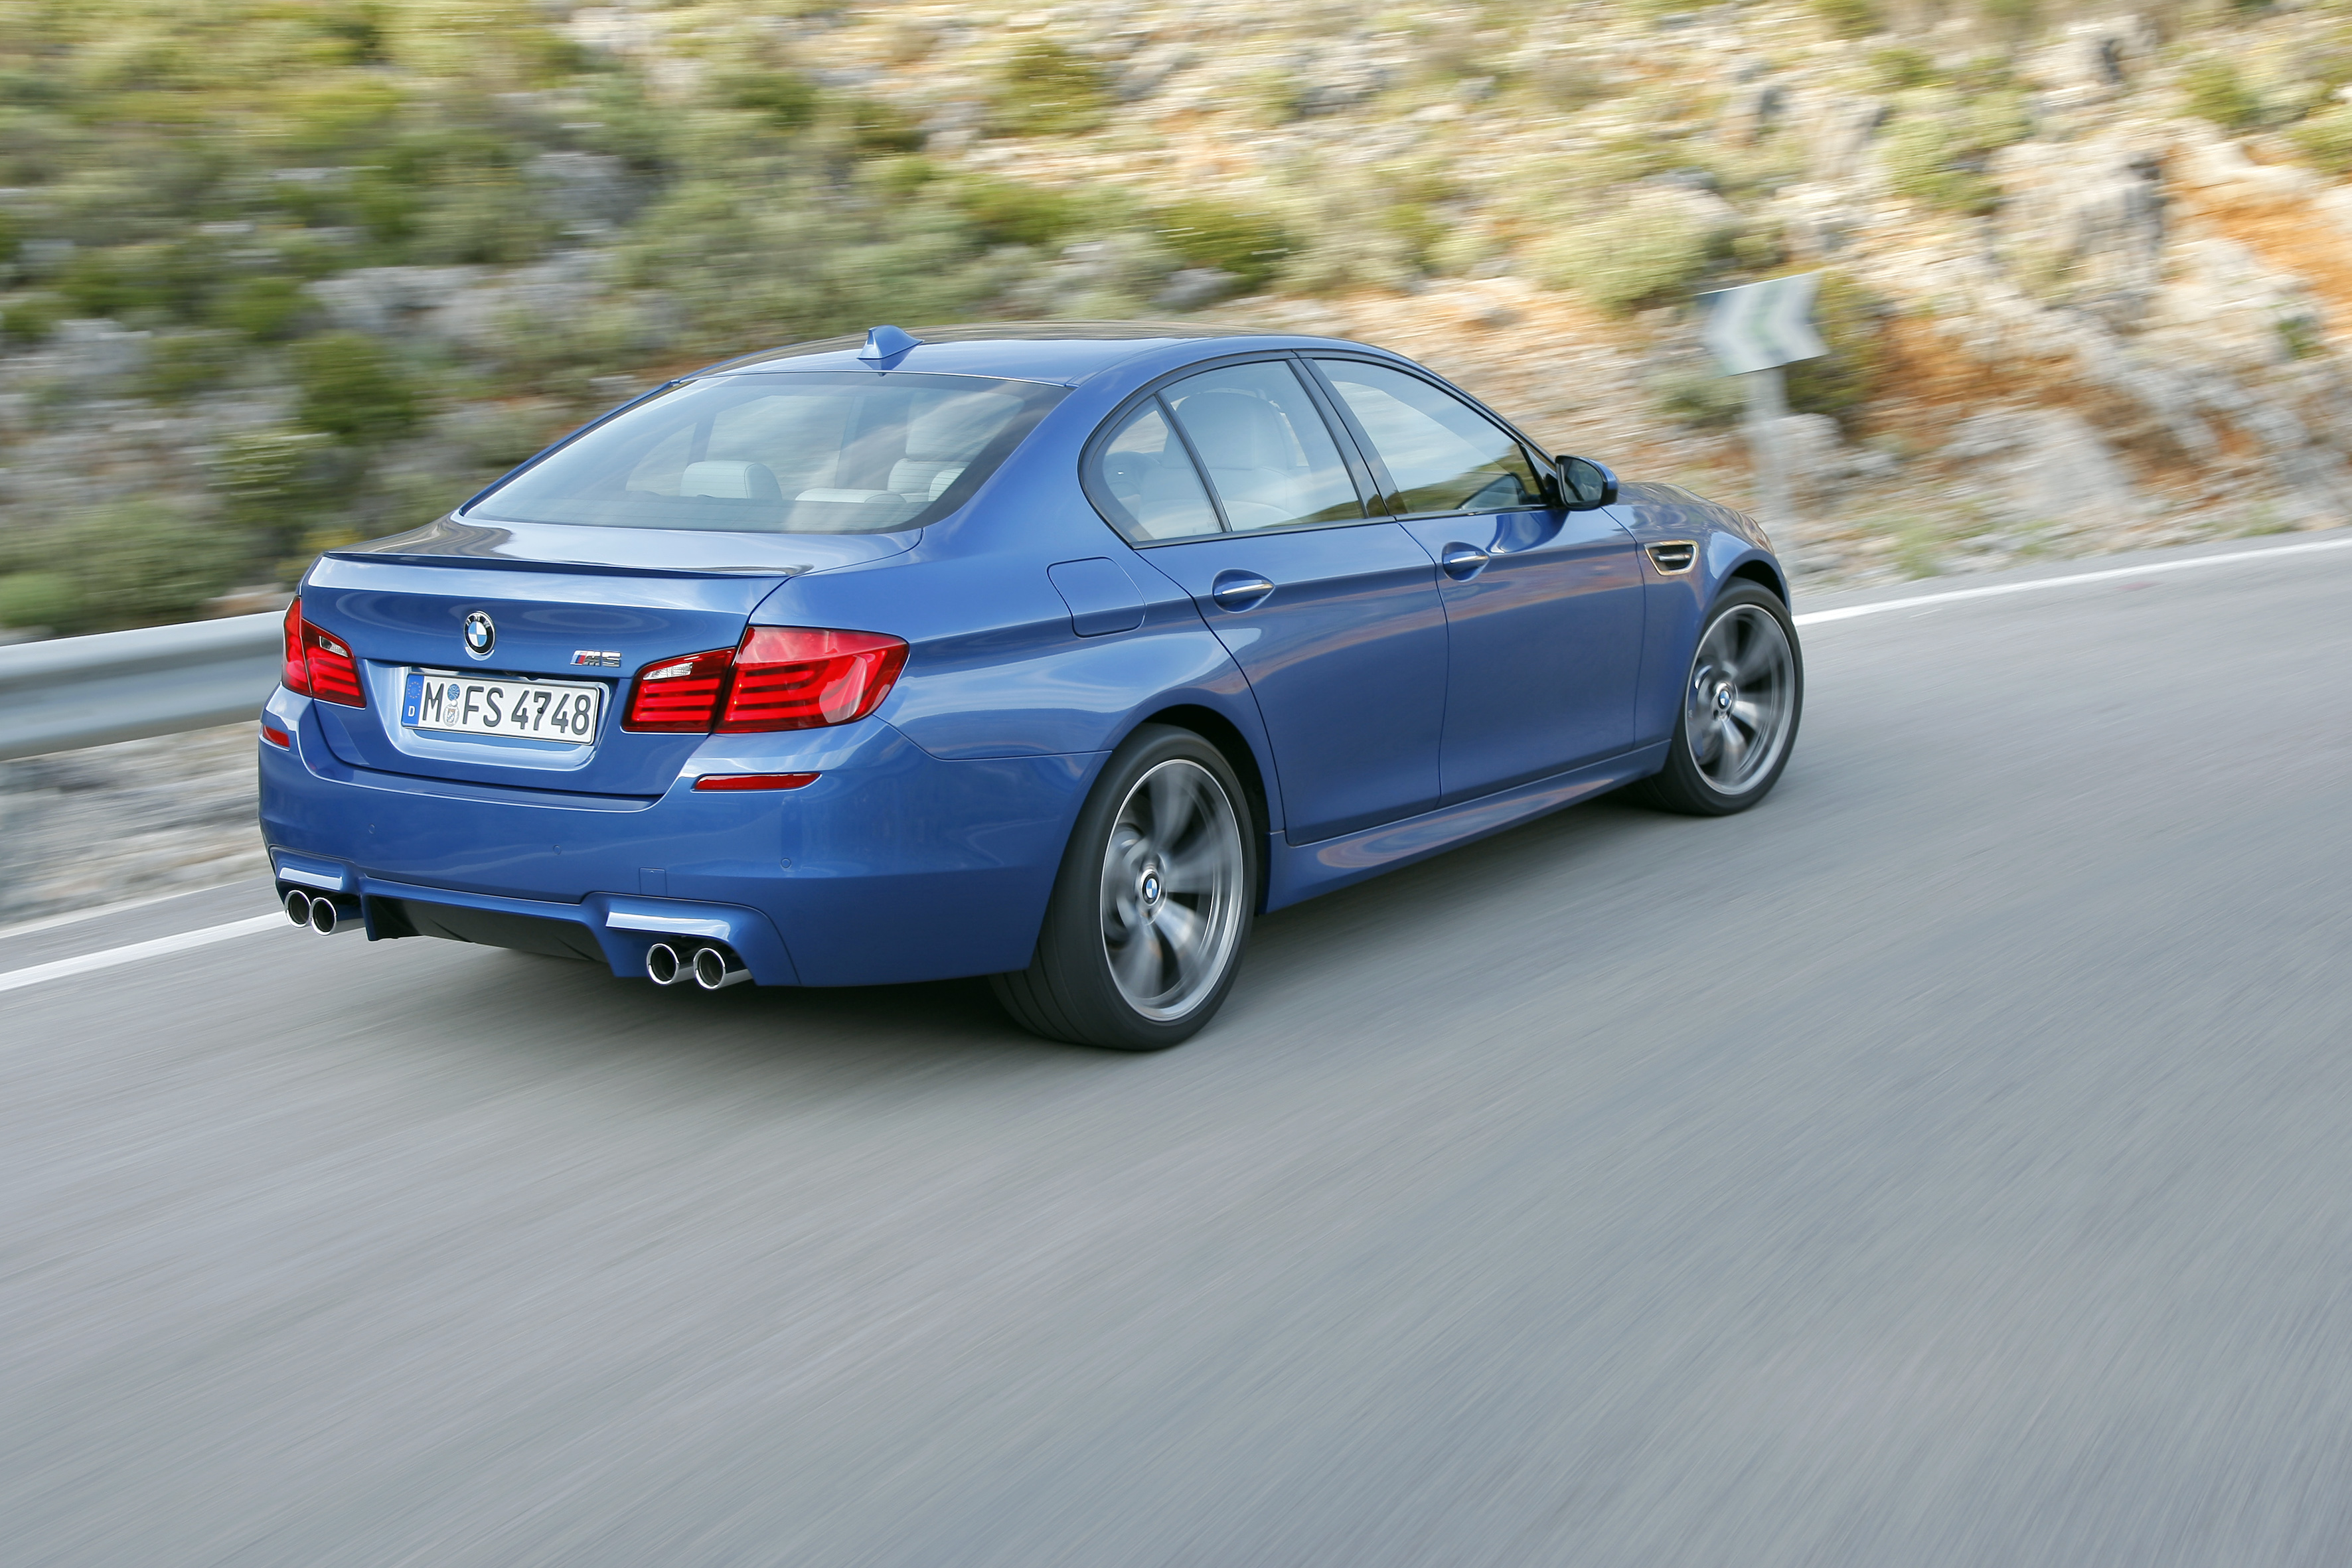 OFFICIAL BMW M5 Production pics high resolution!-p90078352.jpg